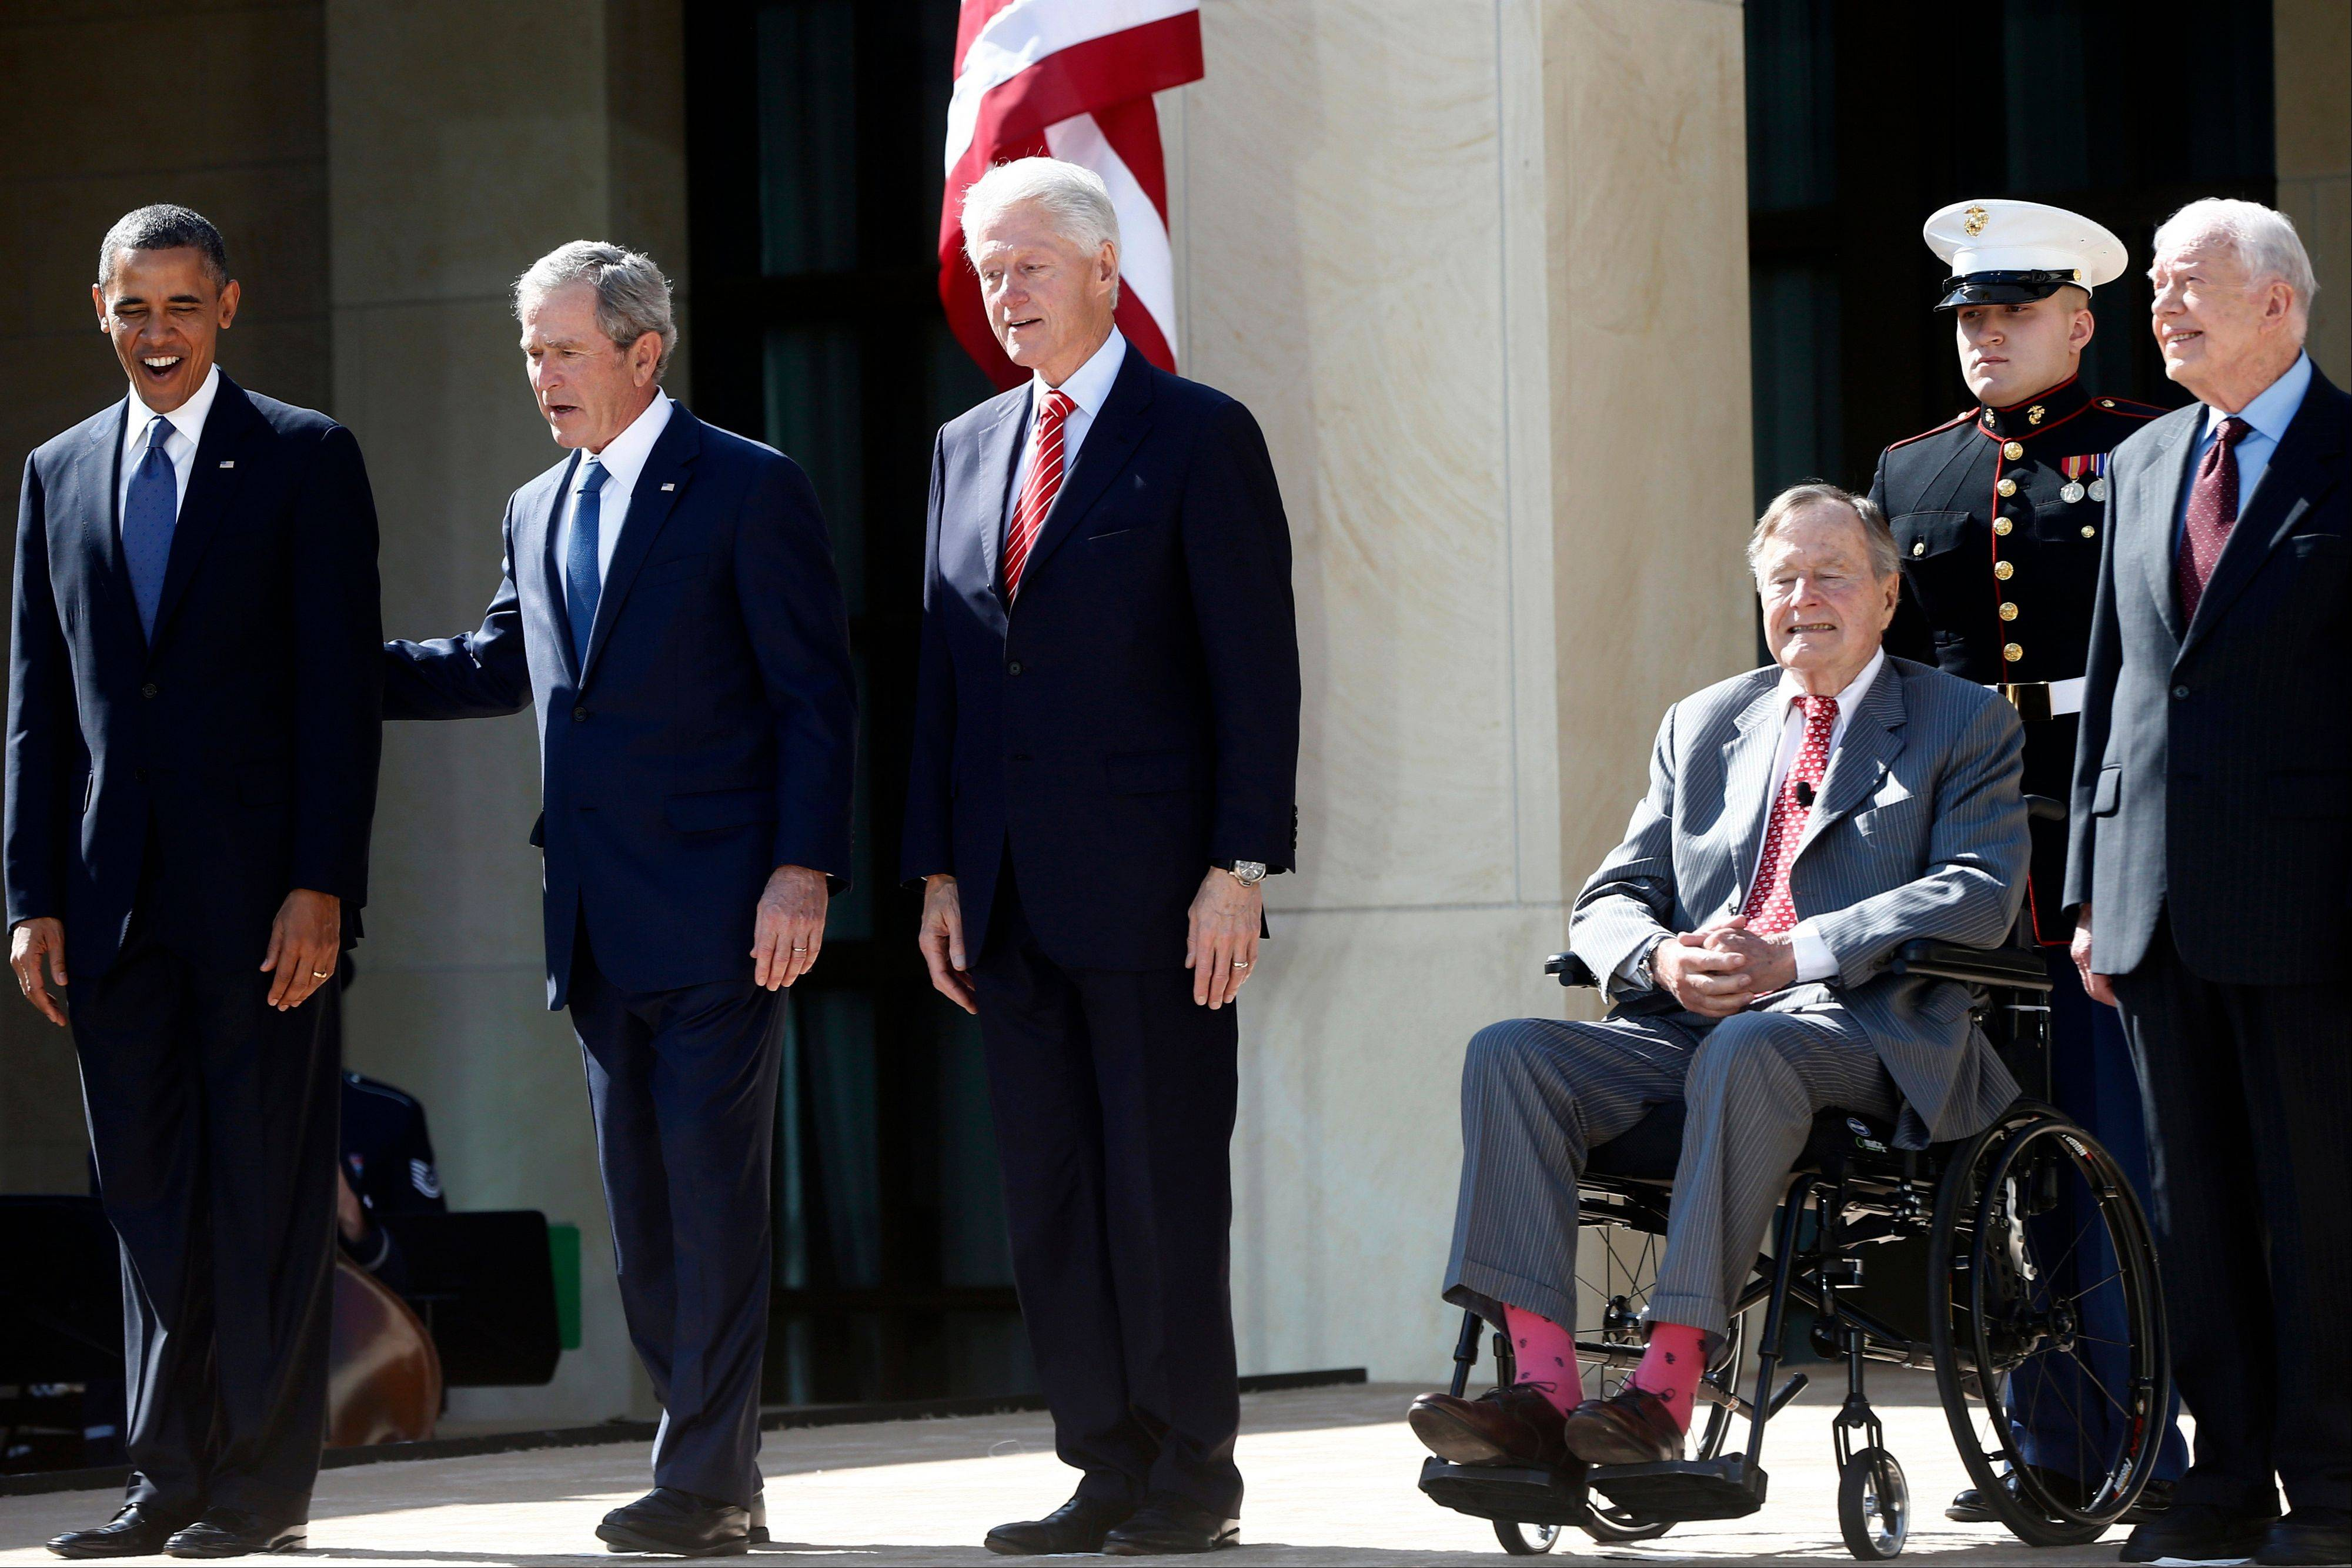 President Barack Obama stands with, from second from left, former Presidents George W. Bush, Bill Clinton, George H.W. Bush, and Jimmy Carter at the dedication of the George W. Bush presidential library on the campus of Southern Methodist University in Dallas, Thursday, April 25, 2013.